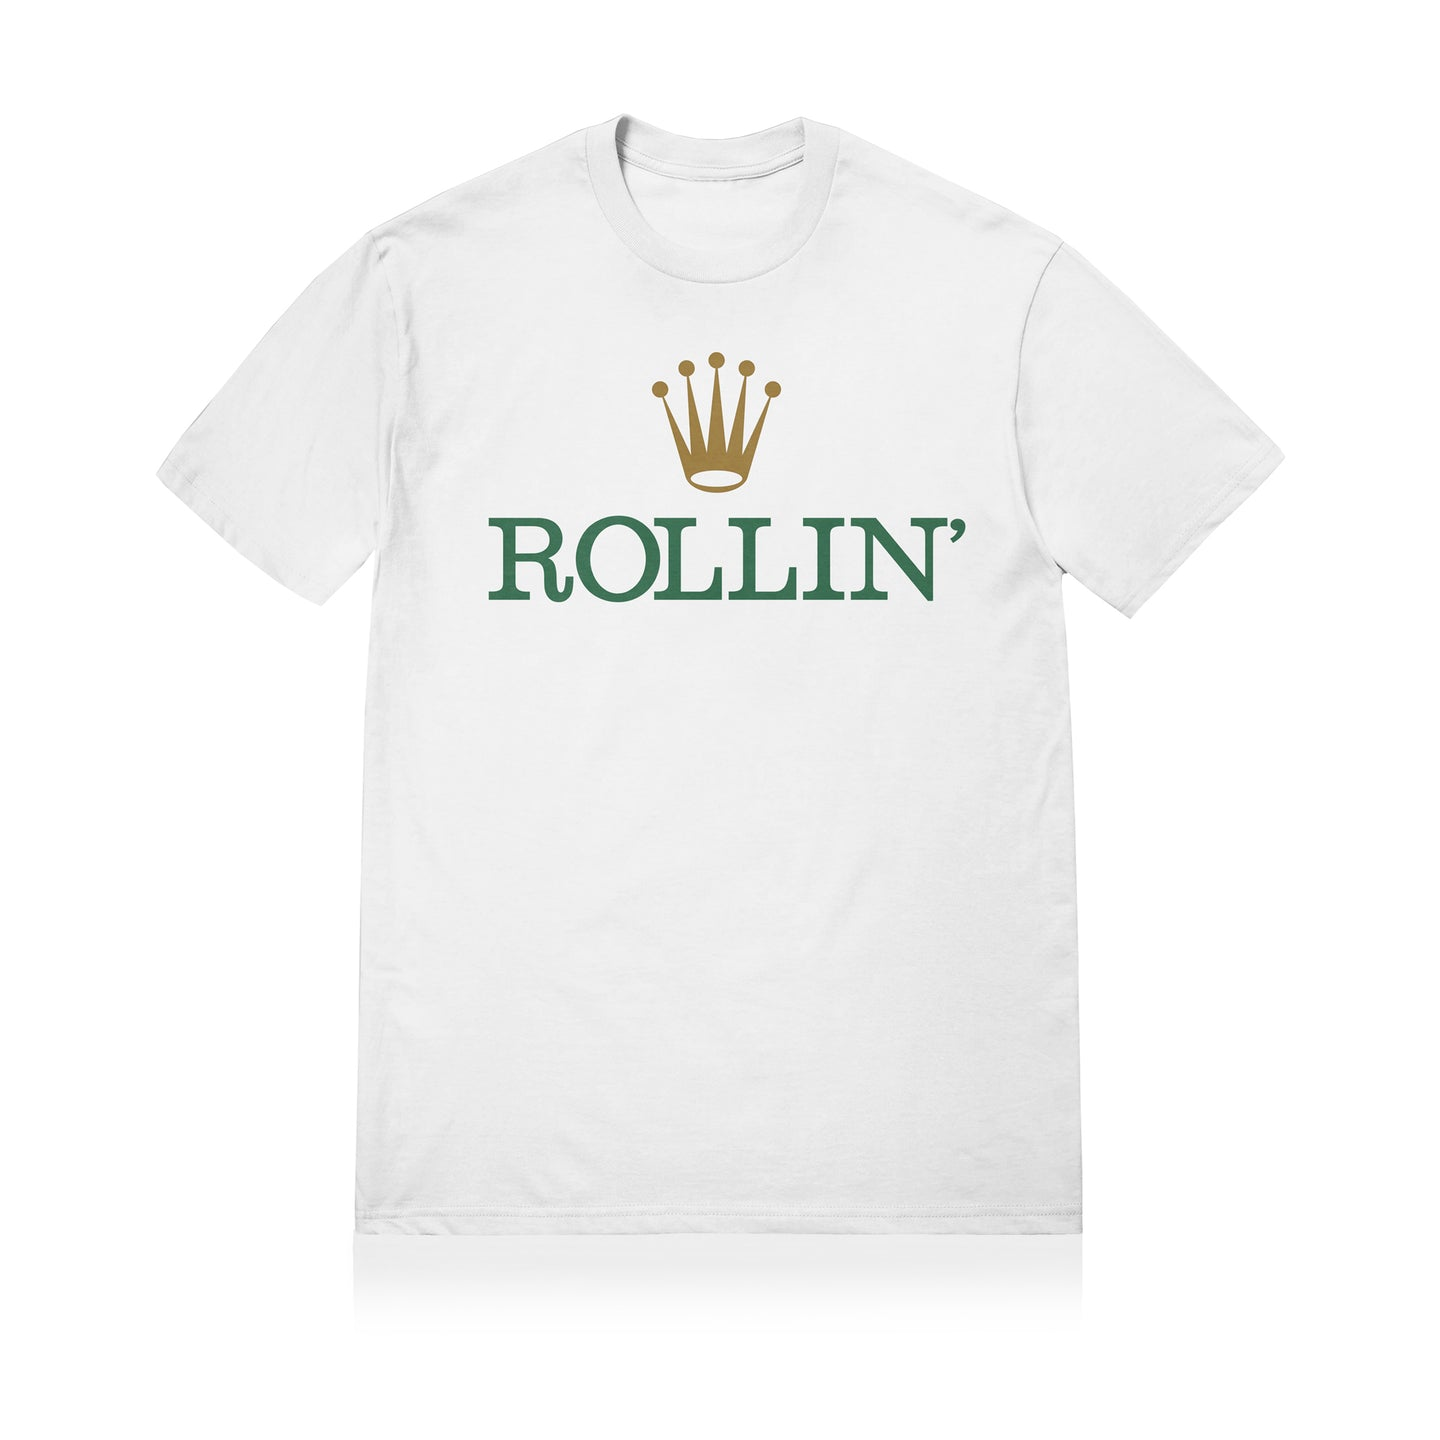 Sneaky ROLLIN Unisex Adult T-shirt White